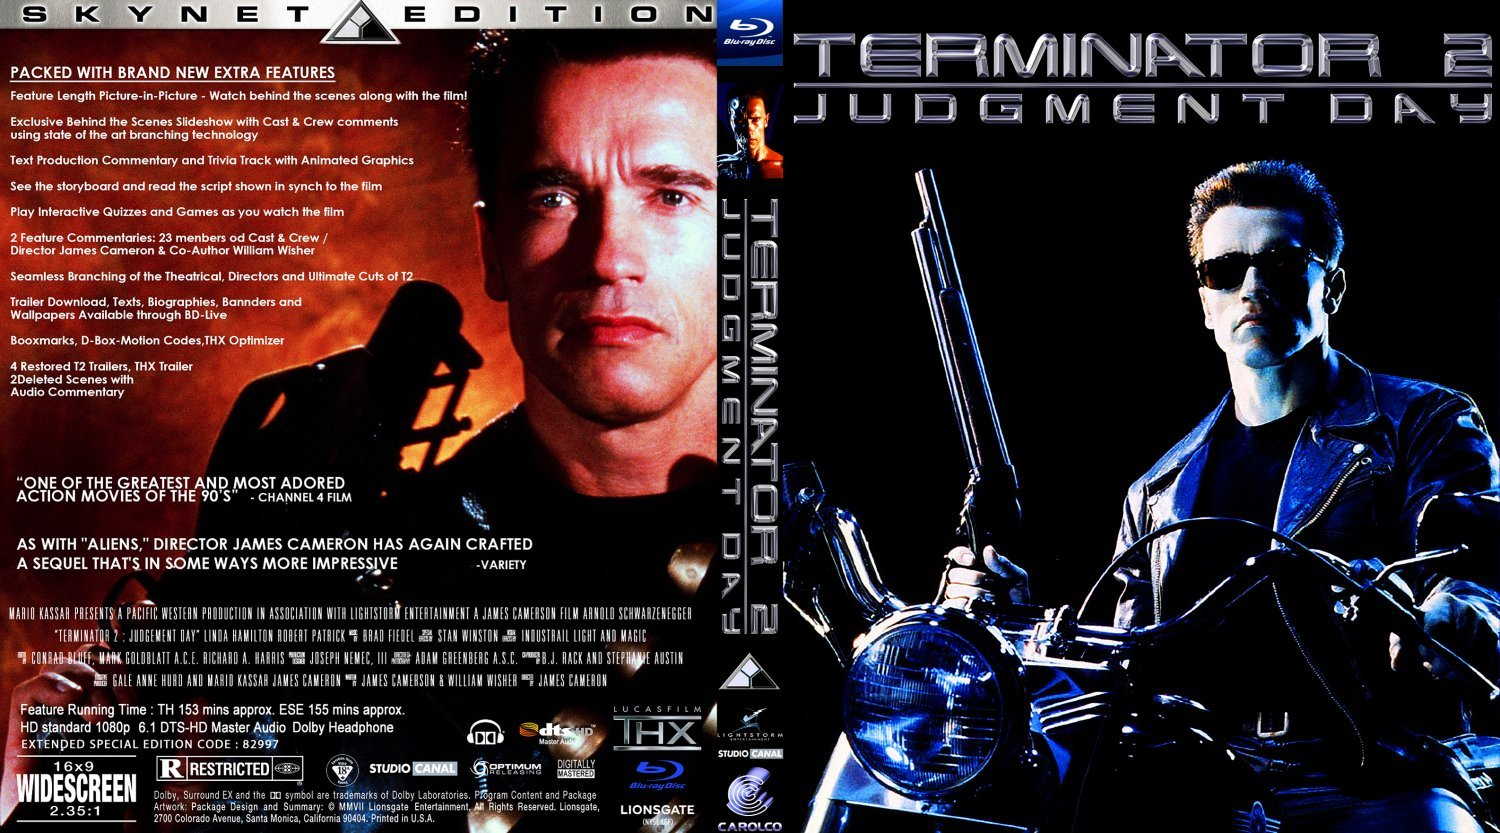 The Terminator 2 Judgment Day | DVD Covers, BluRay Covers ...  |The Terminator 2 Cover